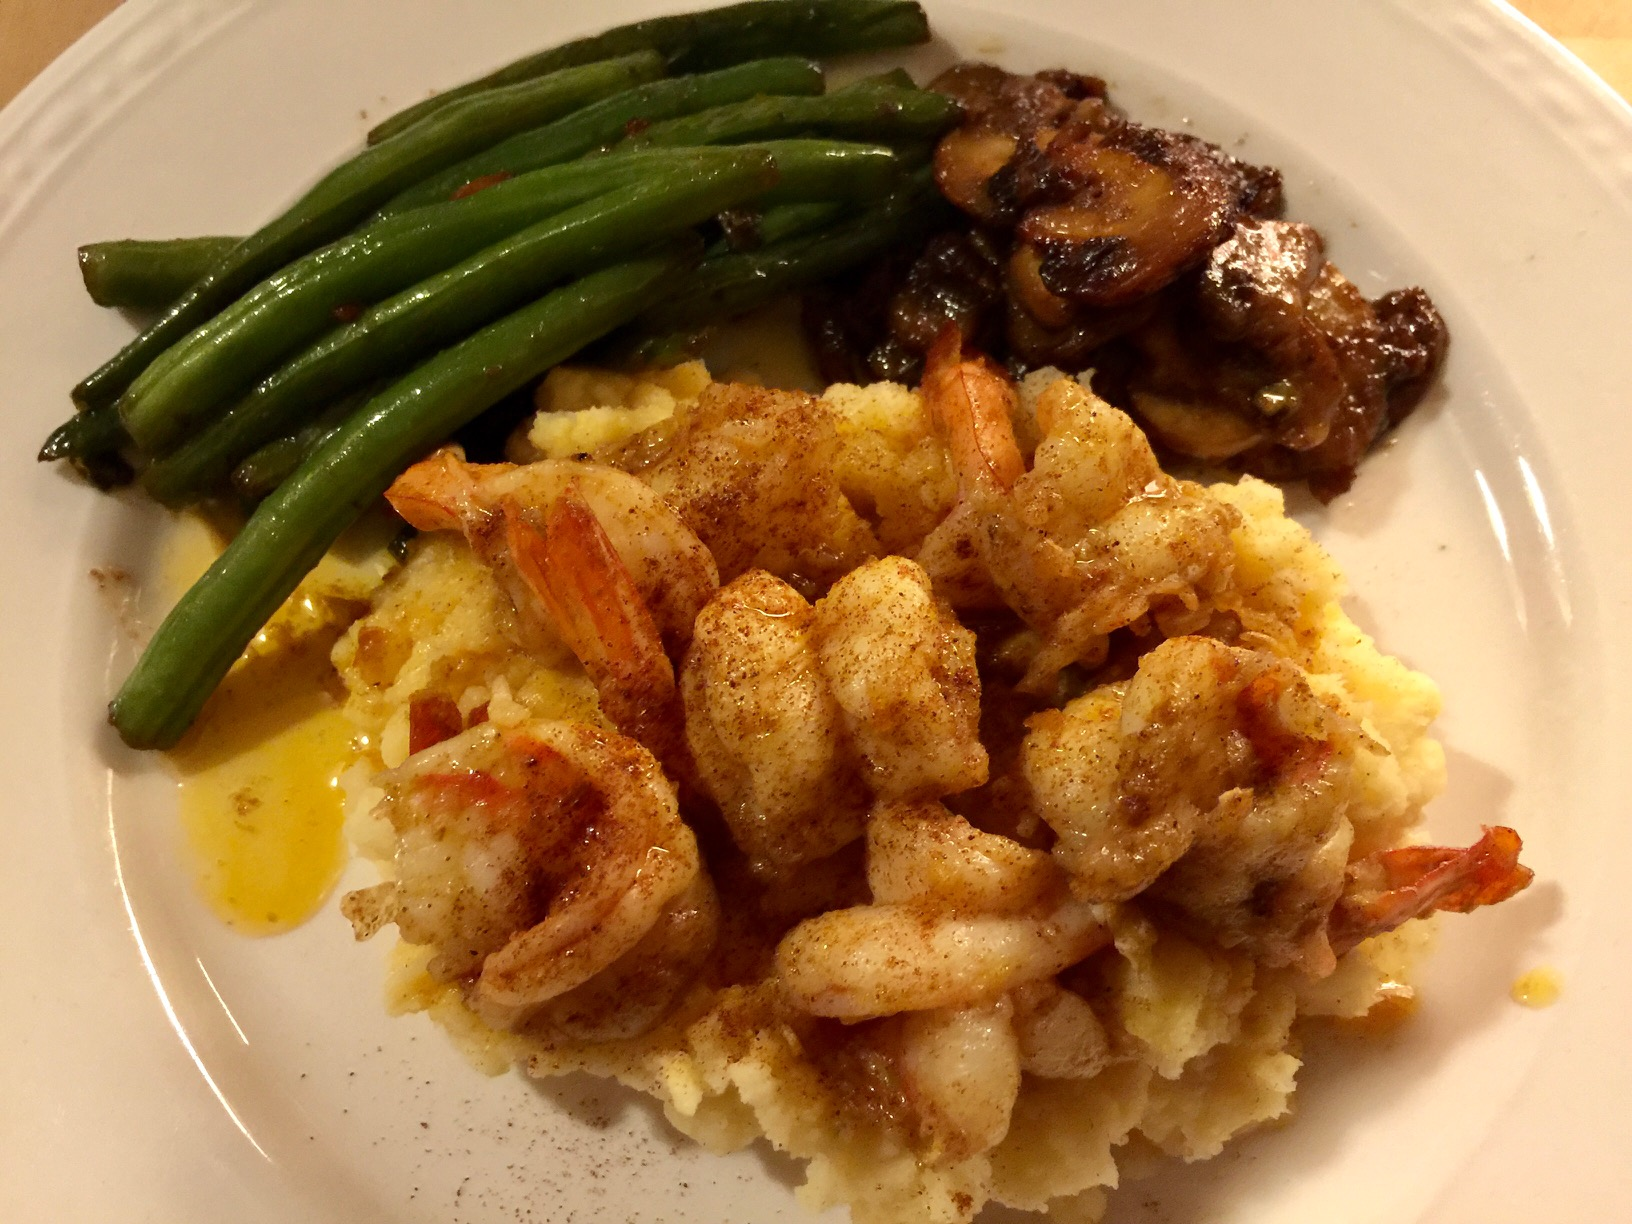 Cajun Shrimp and Mashed Potatoes